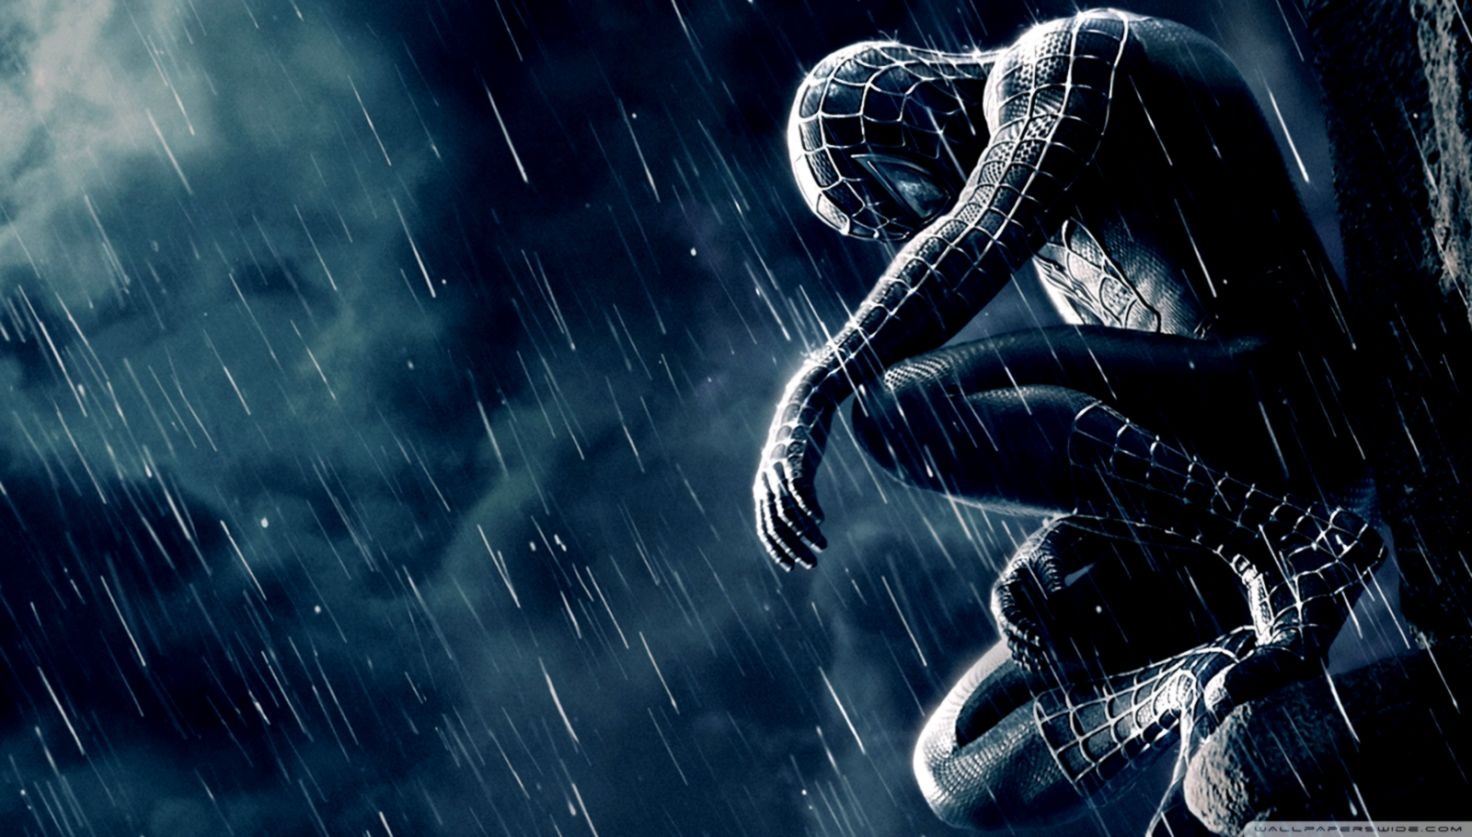 Spiderman 3 New Action Wallpaper Copy Wallpapers